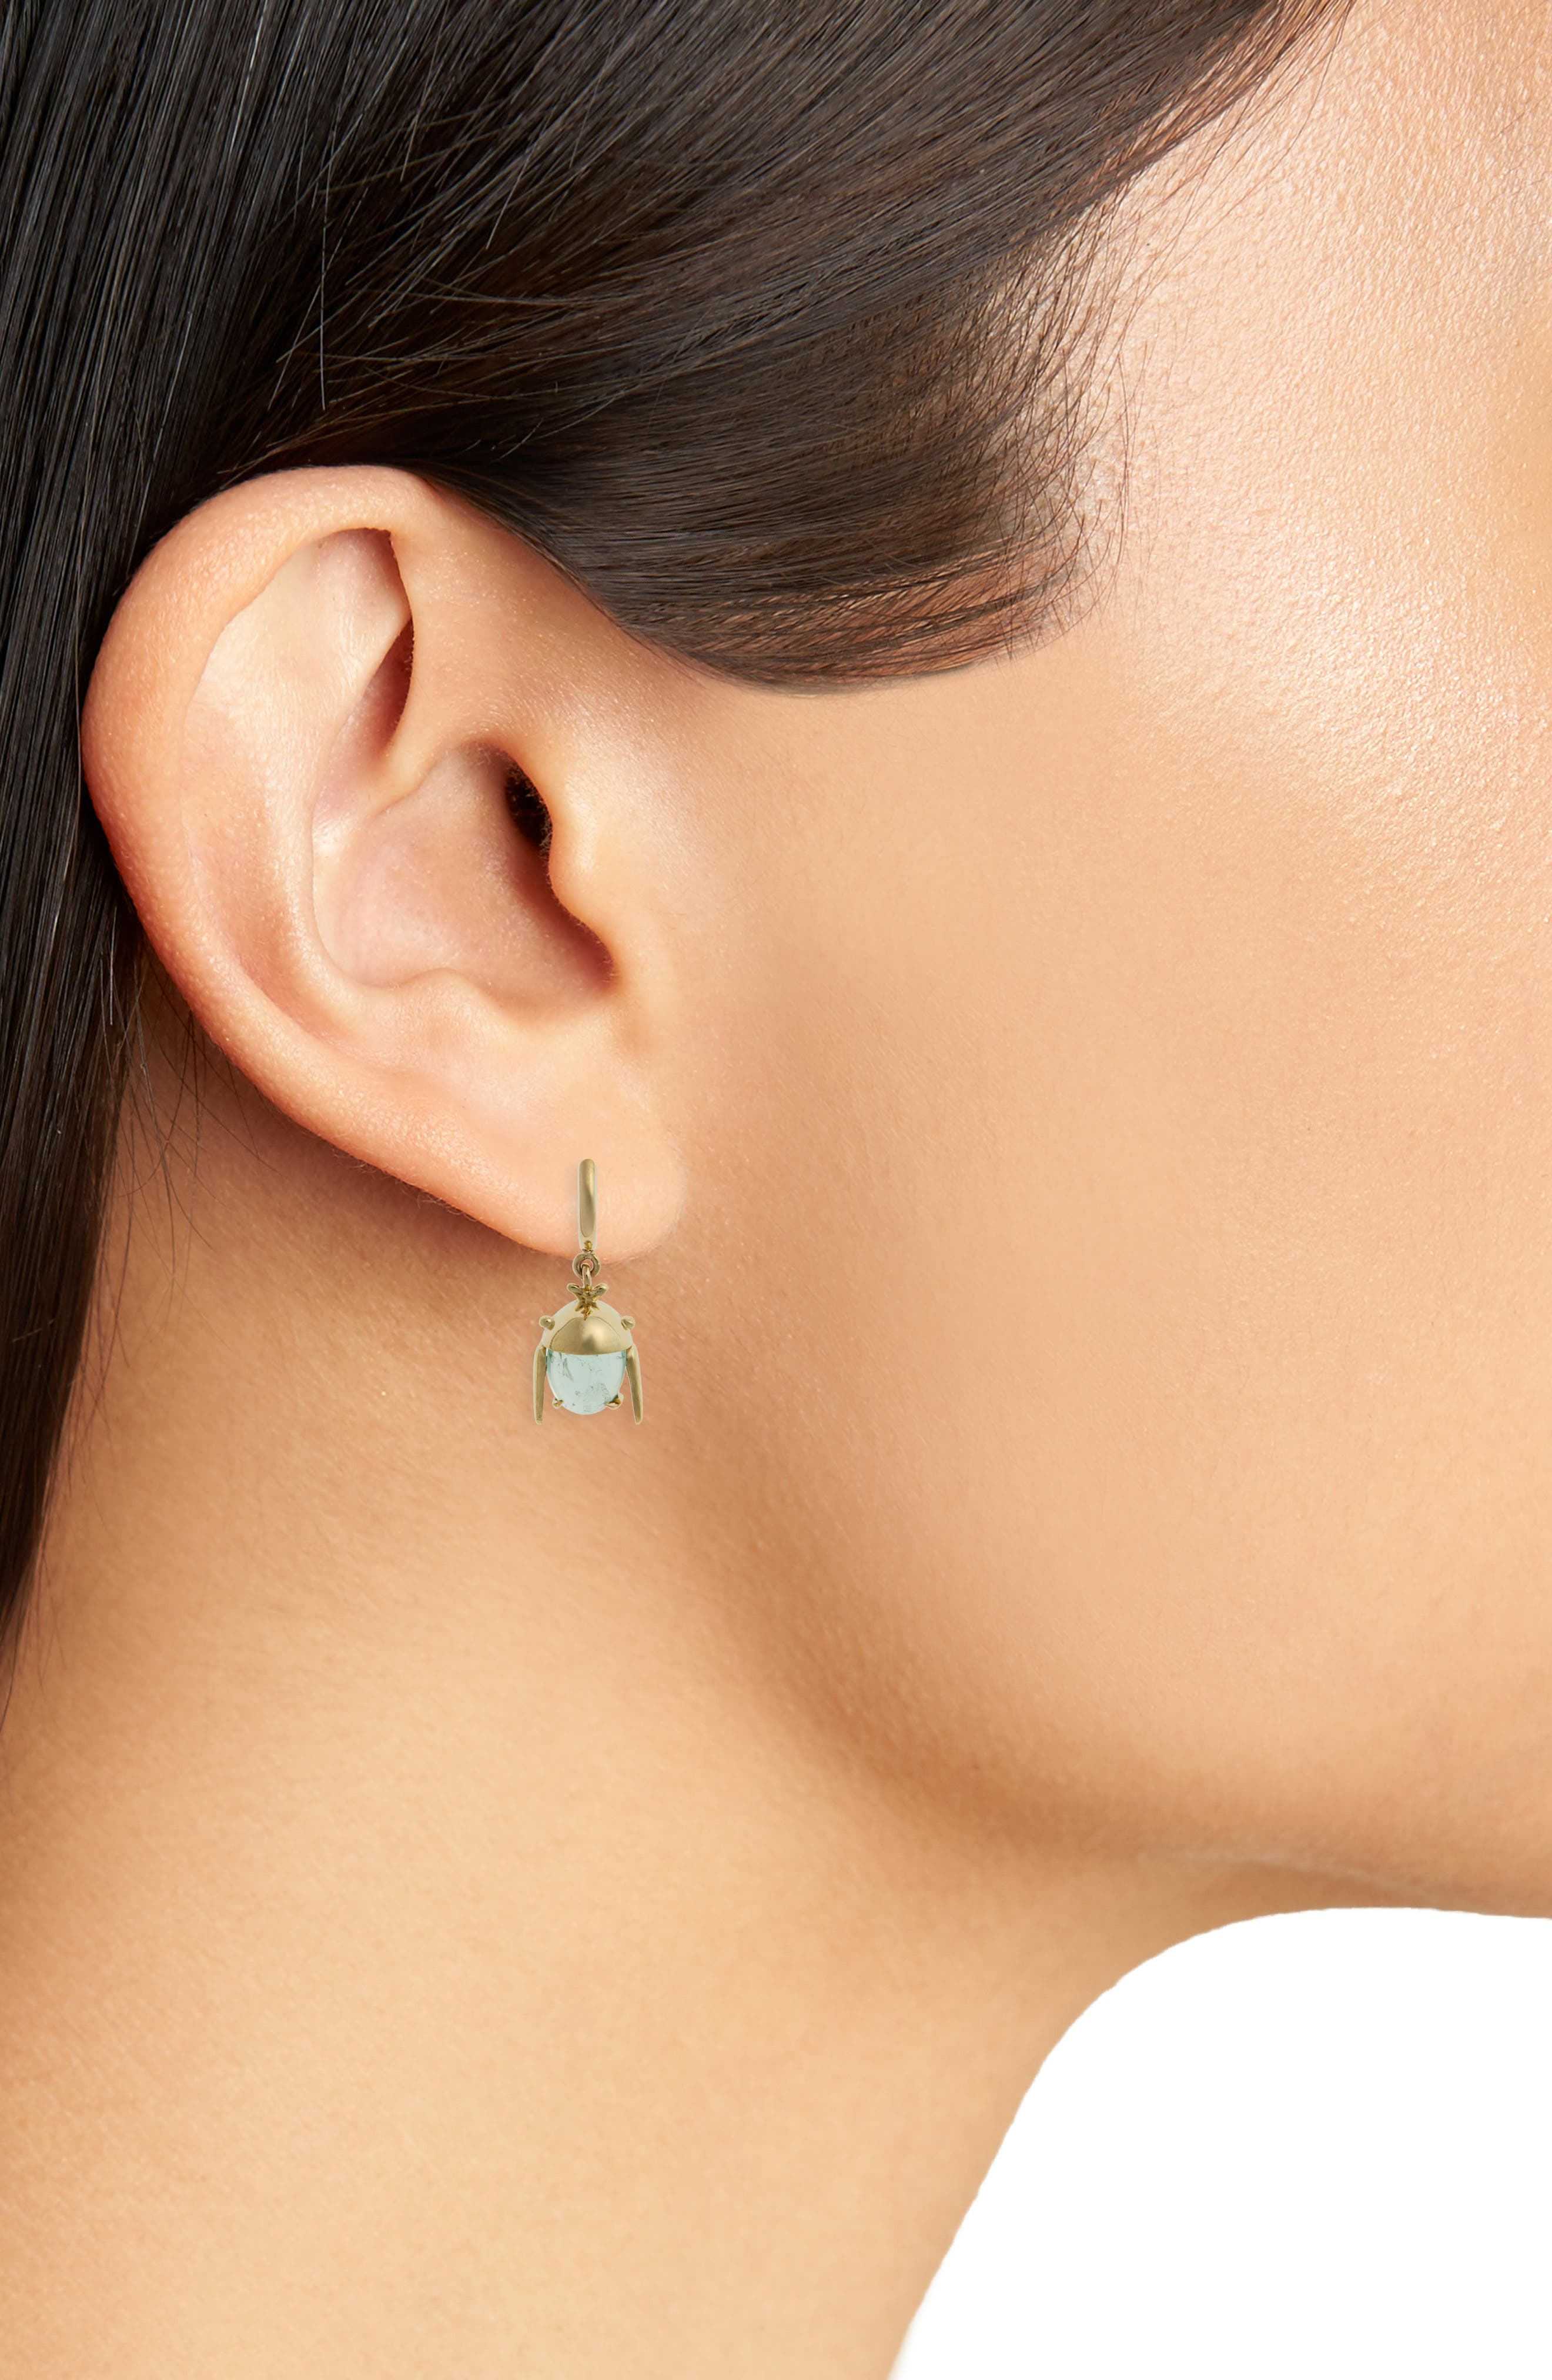 Chiquitin Volador Tourmaline Hoop Earring,                             Alternate thumbnail 2, color,                             Mint/ Yellow Gold